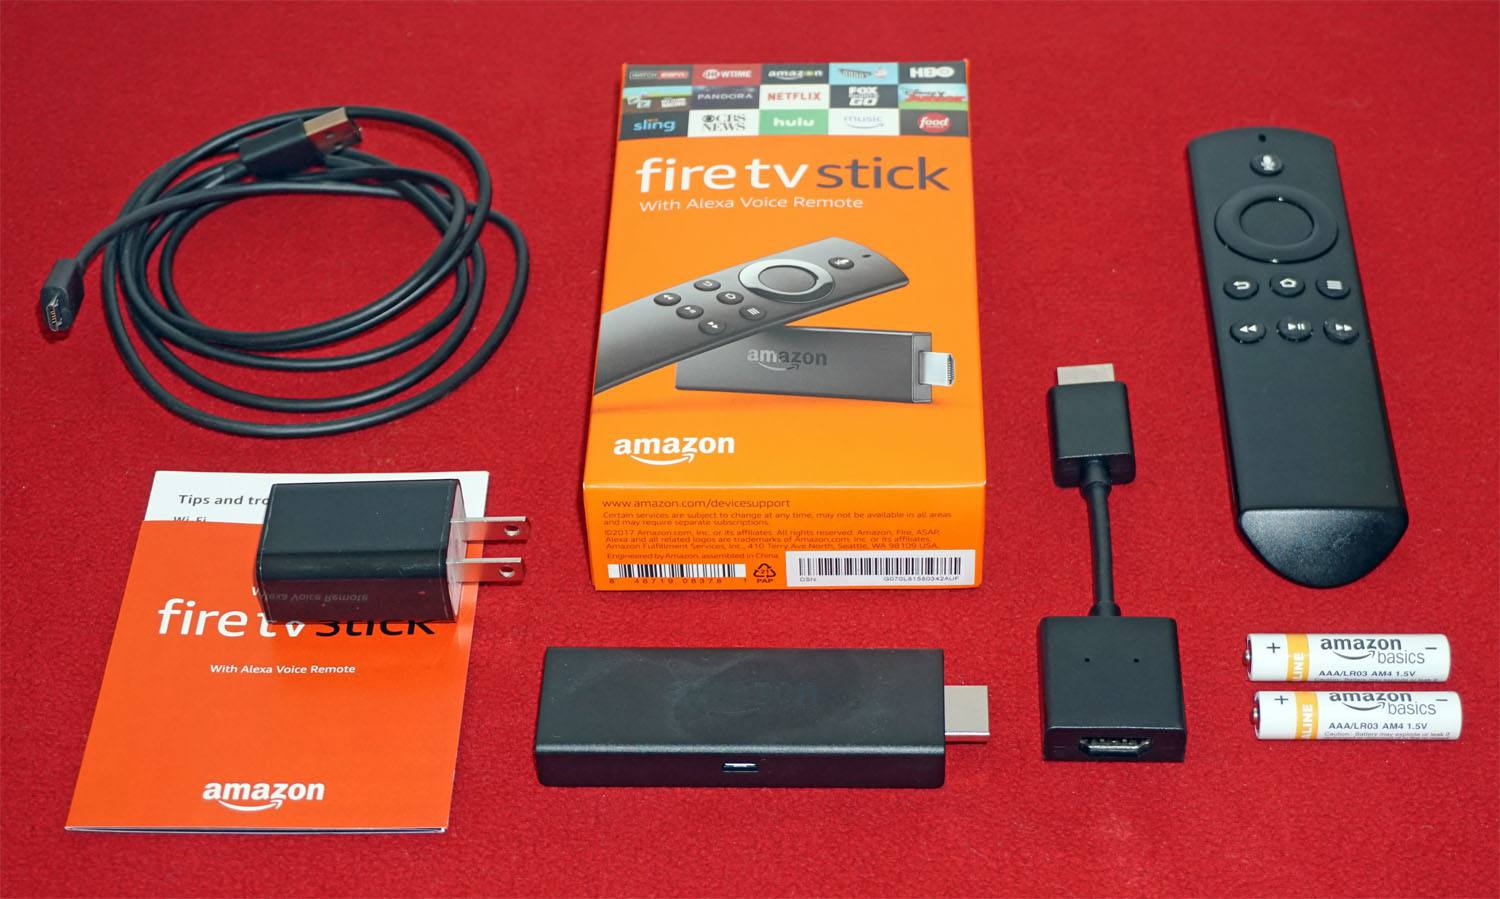 The Amazon Fire Tv Stick Review Computer Electrical Wire Junction Box Switch Socket Storage With Alexa Voice Remotepackage